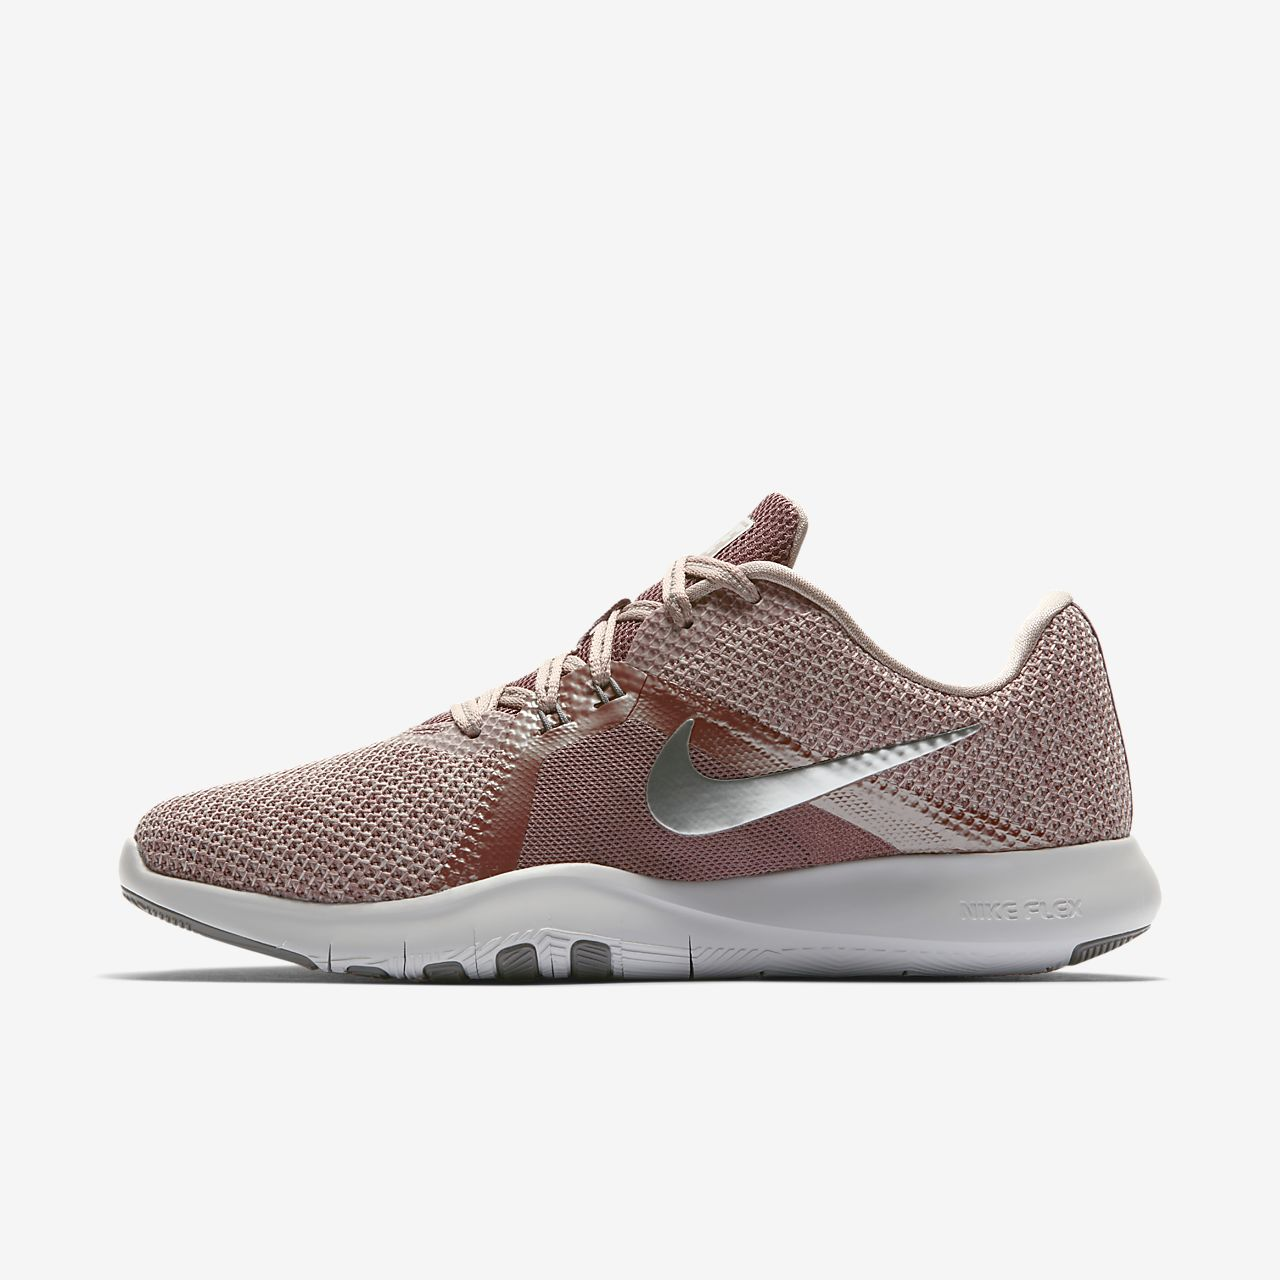 Nike Flex Trainer 8 Premium Women's Gym/Workout/Fitness Class Shoe